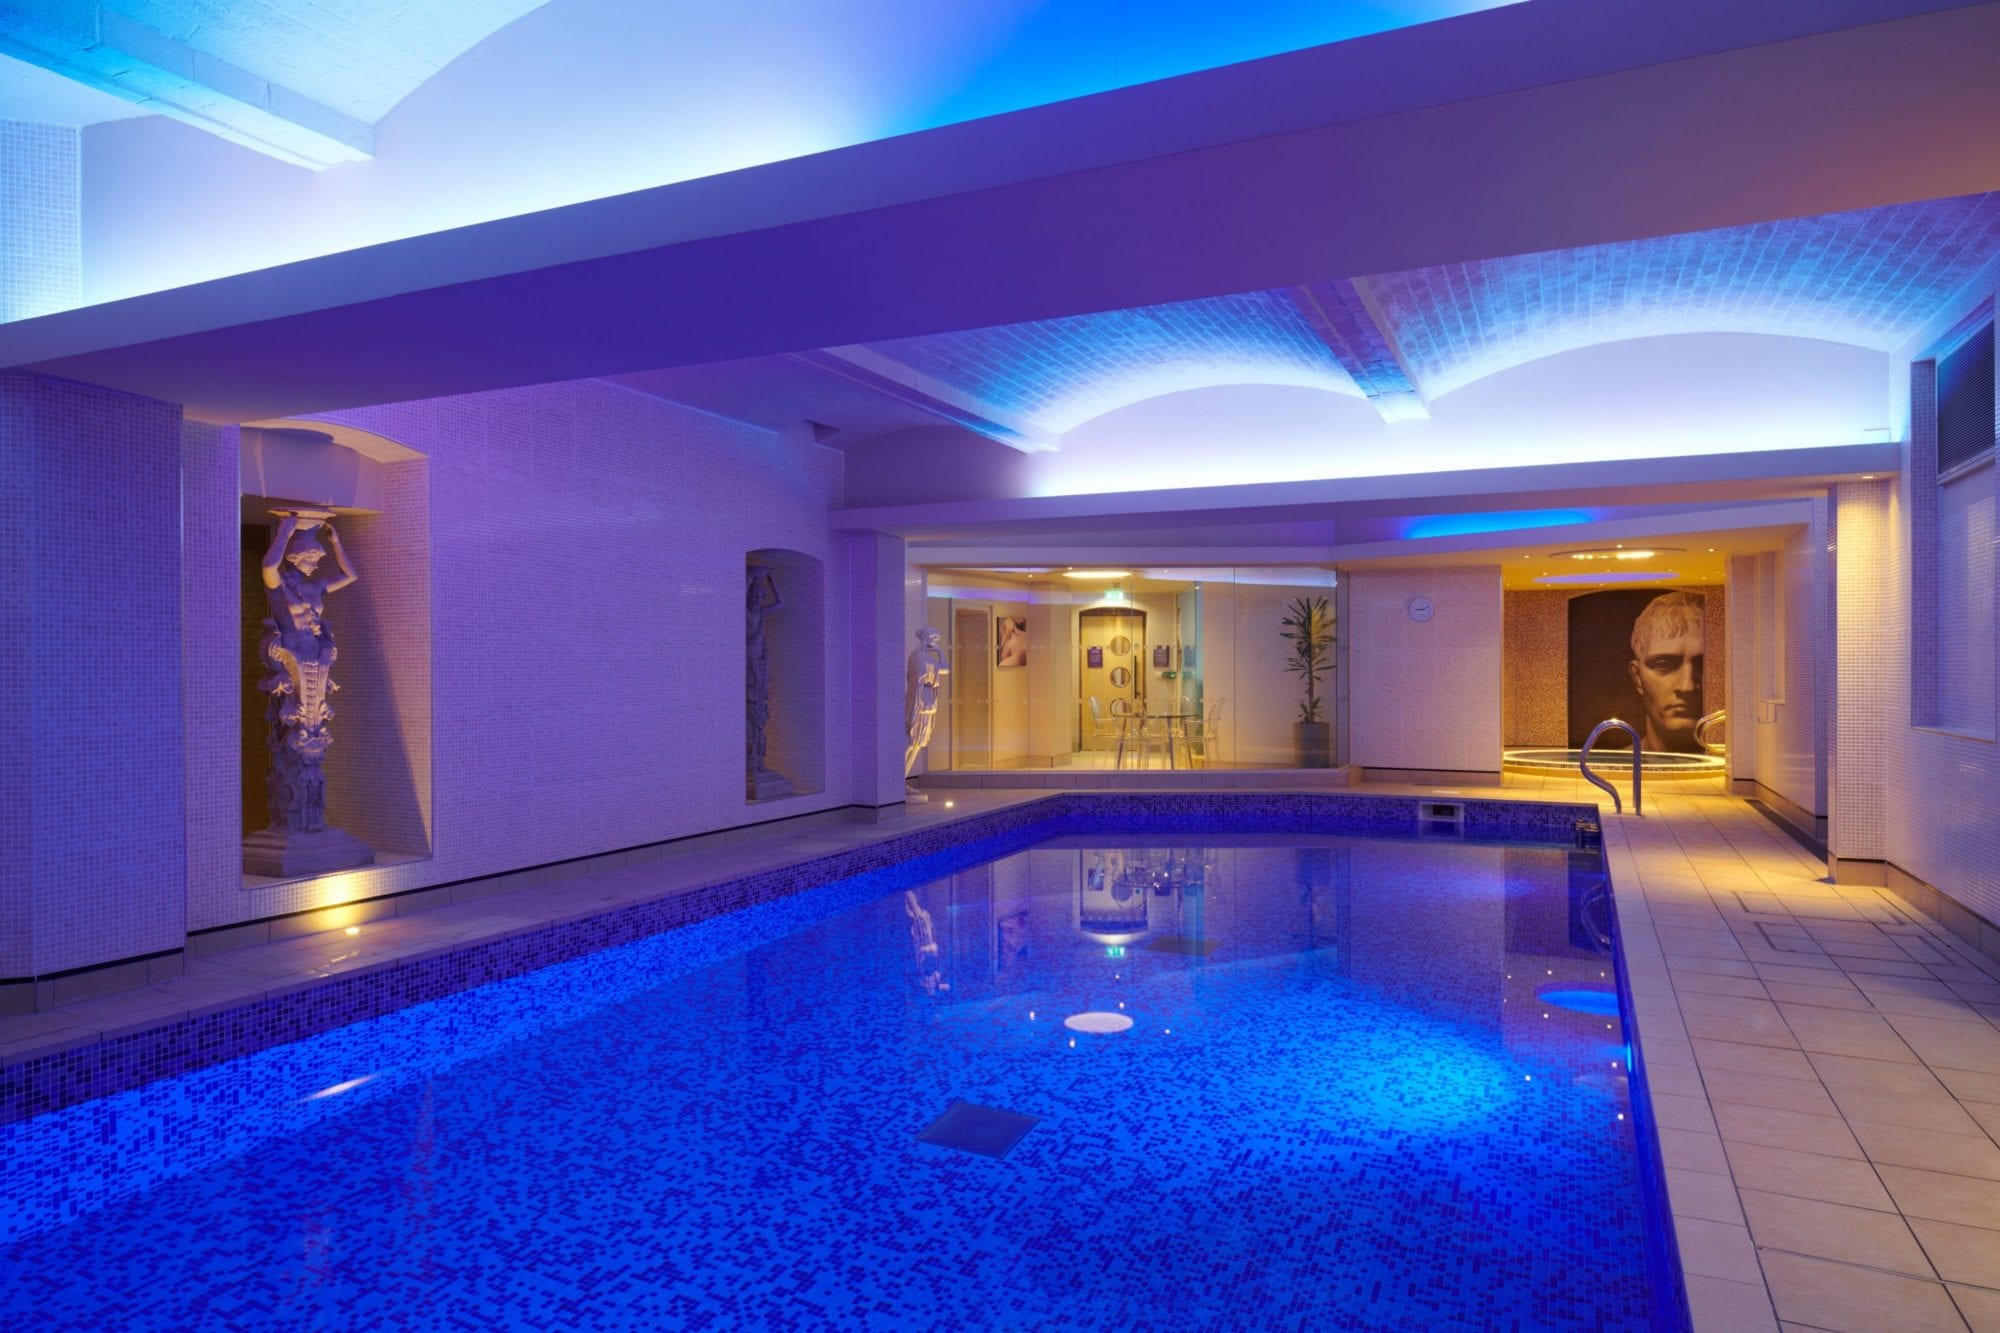 The Grand Spa Swimming Pool